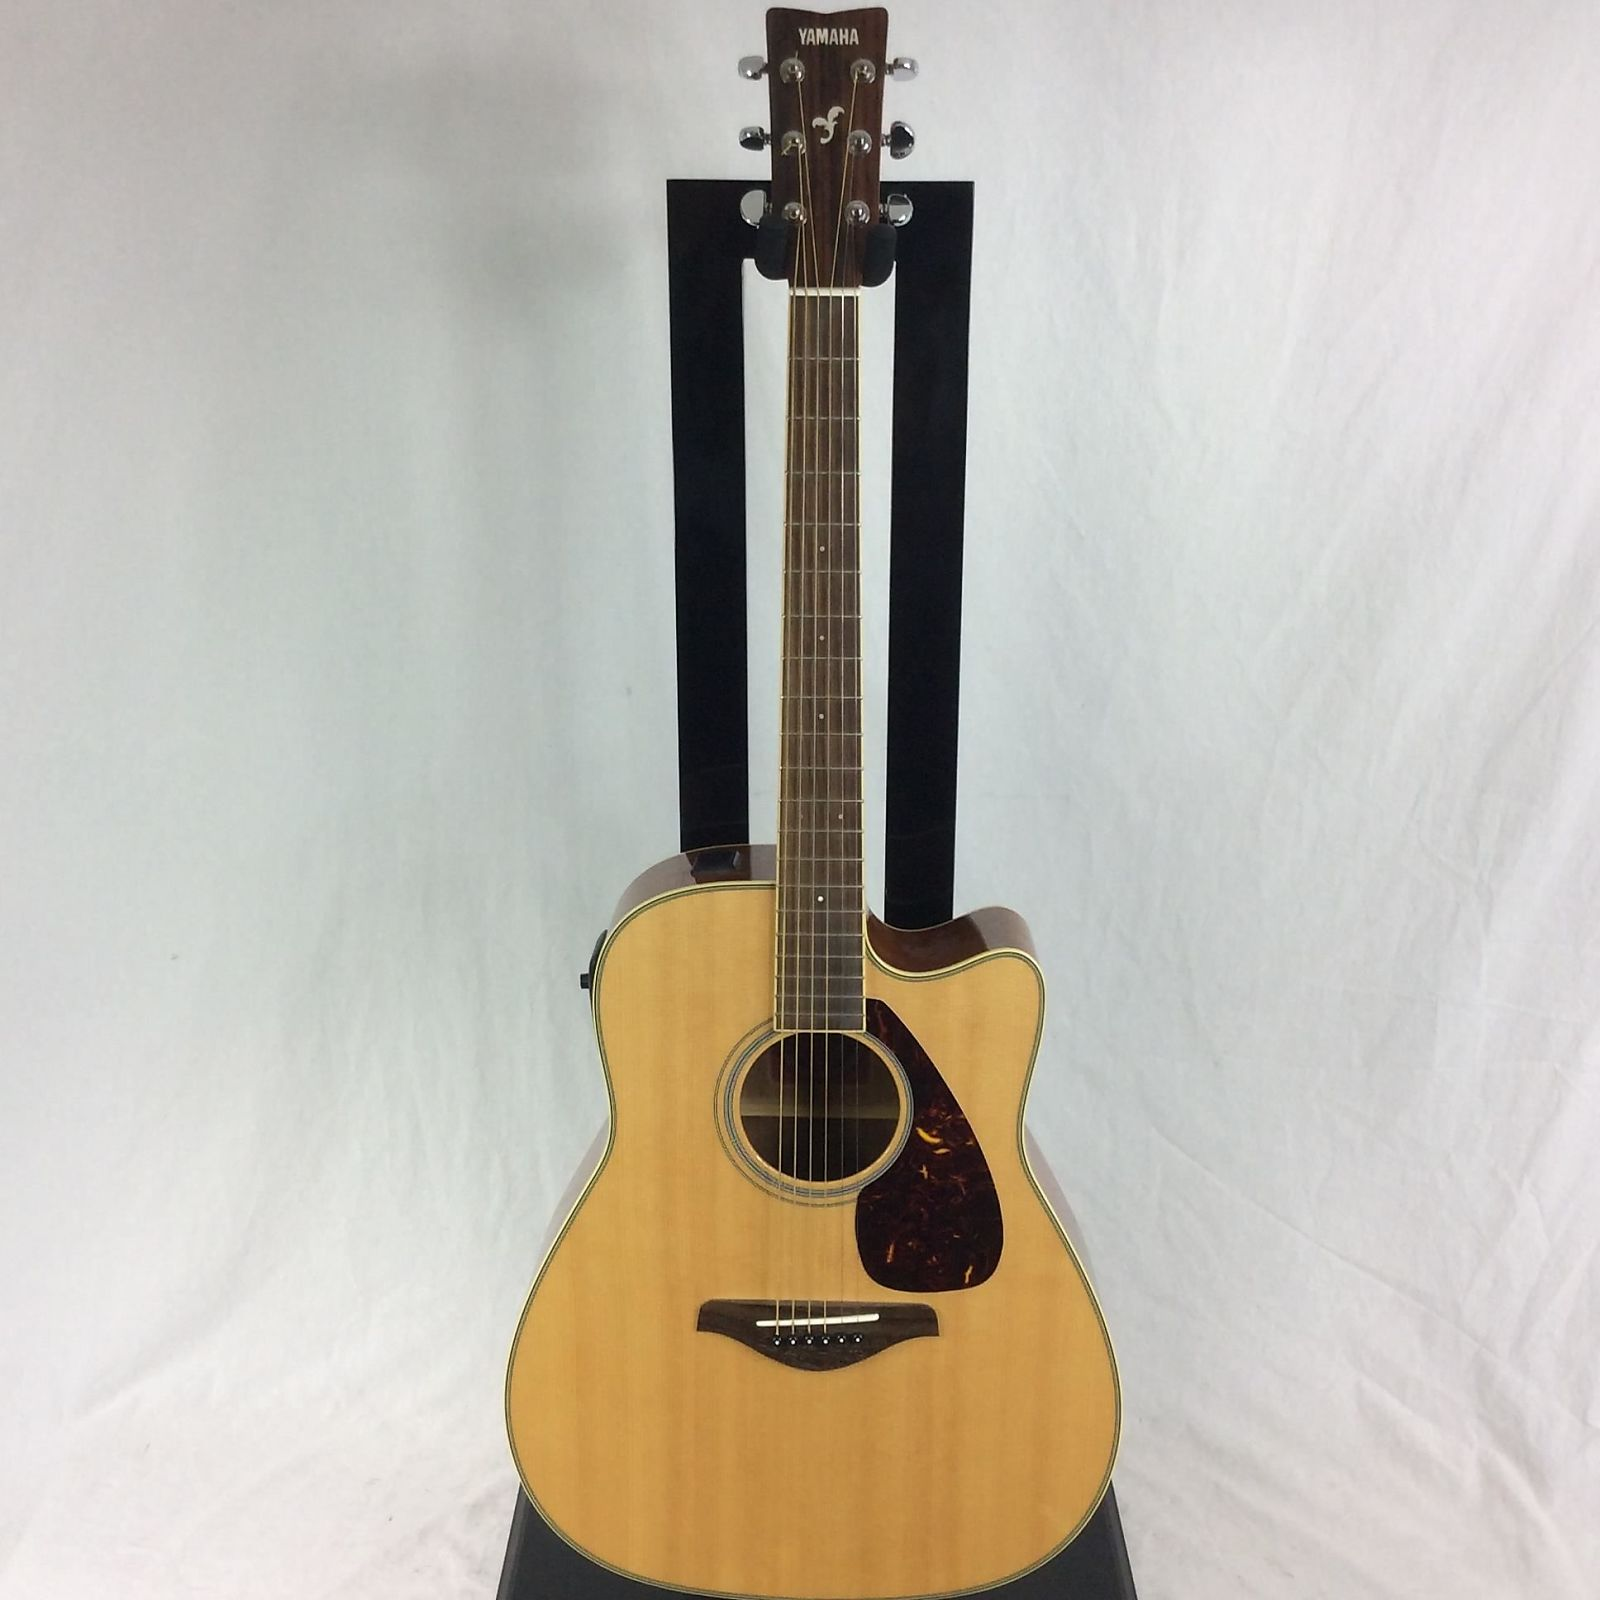 Yamaha fgx720sca folk acoustic electric guitar natural for Yamaha fgx720sca price